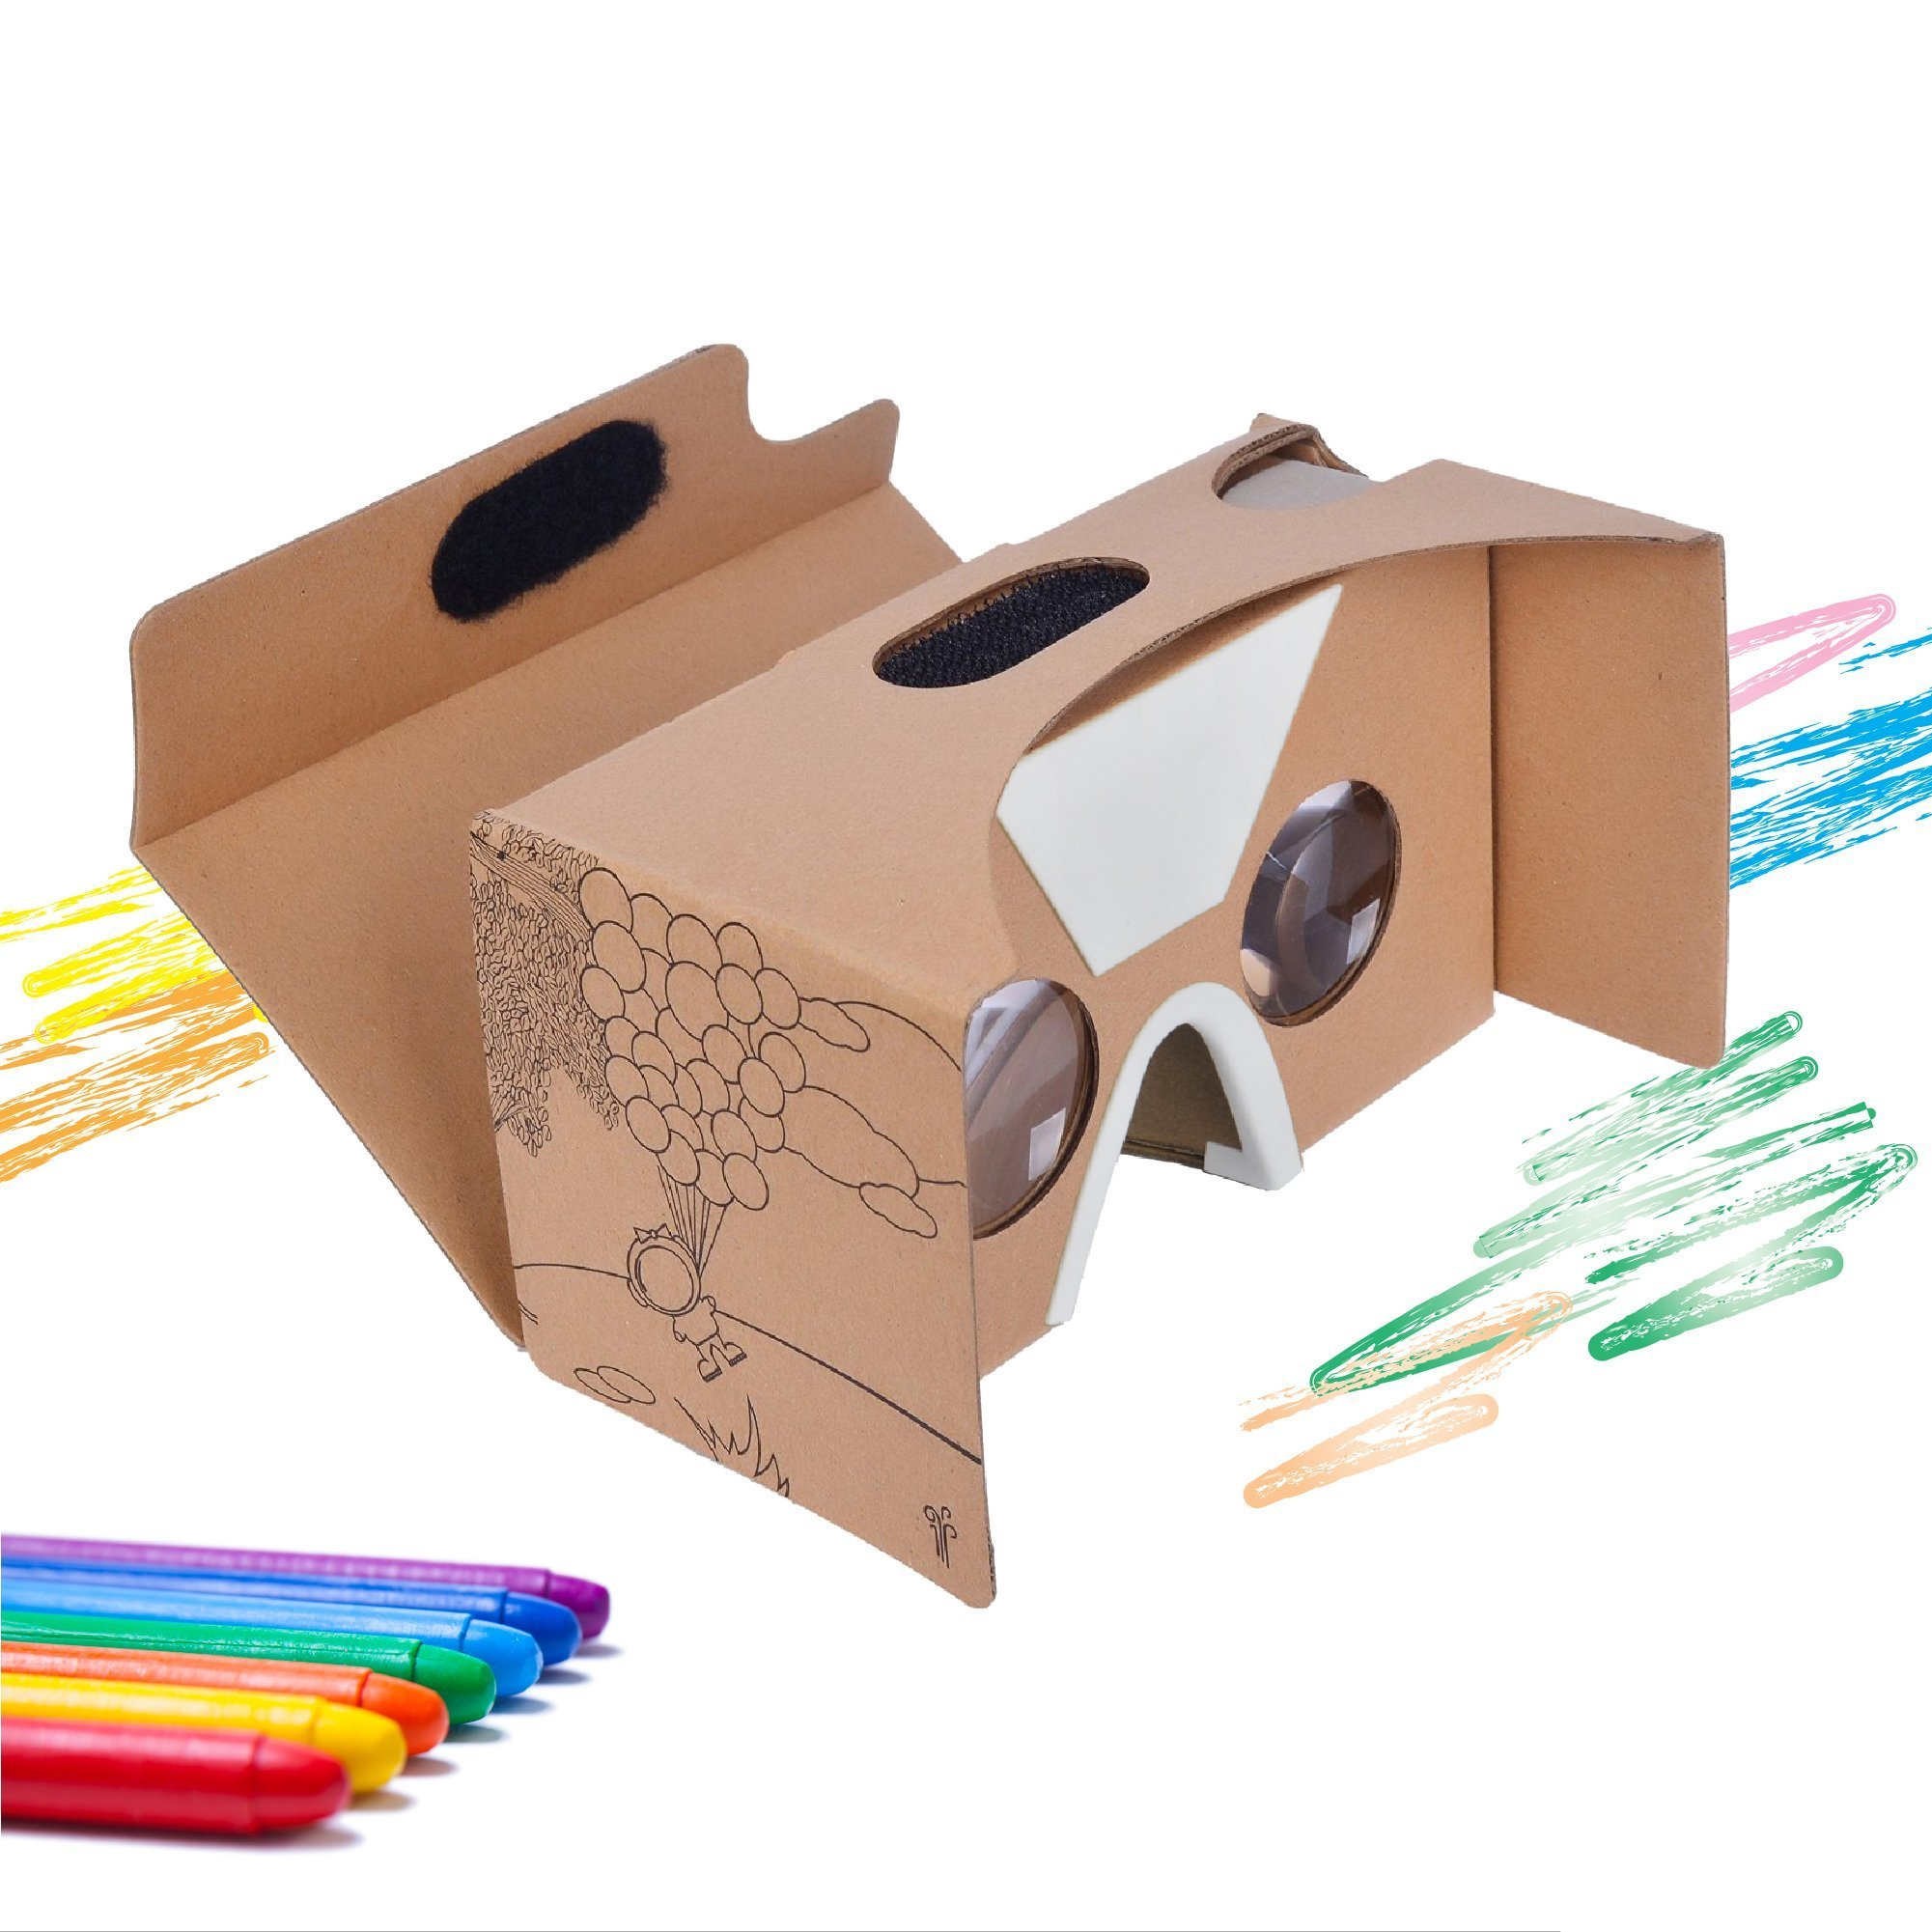 Google Cardboard V2 Virtual Reality Headset By CardboardKid - Kids Friendly, Fun 3D Viewer, Exciting and Educational, Recommended Apps, Compatible with All iPhone and Android Smartphones (Max 6'')